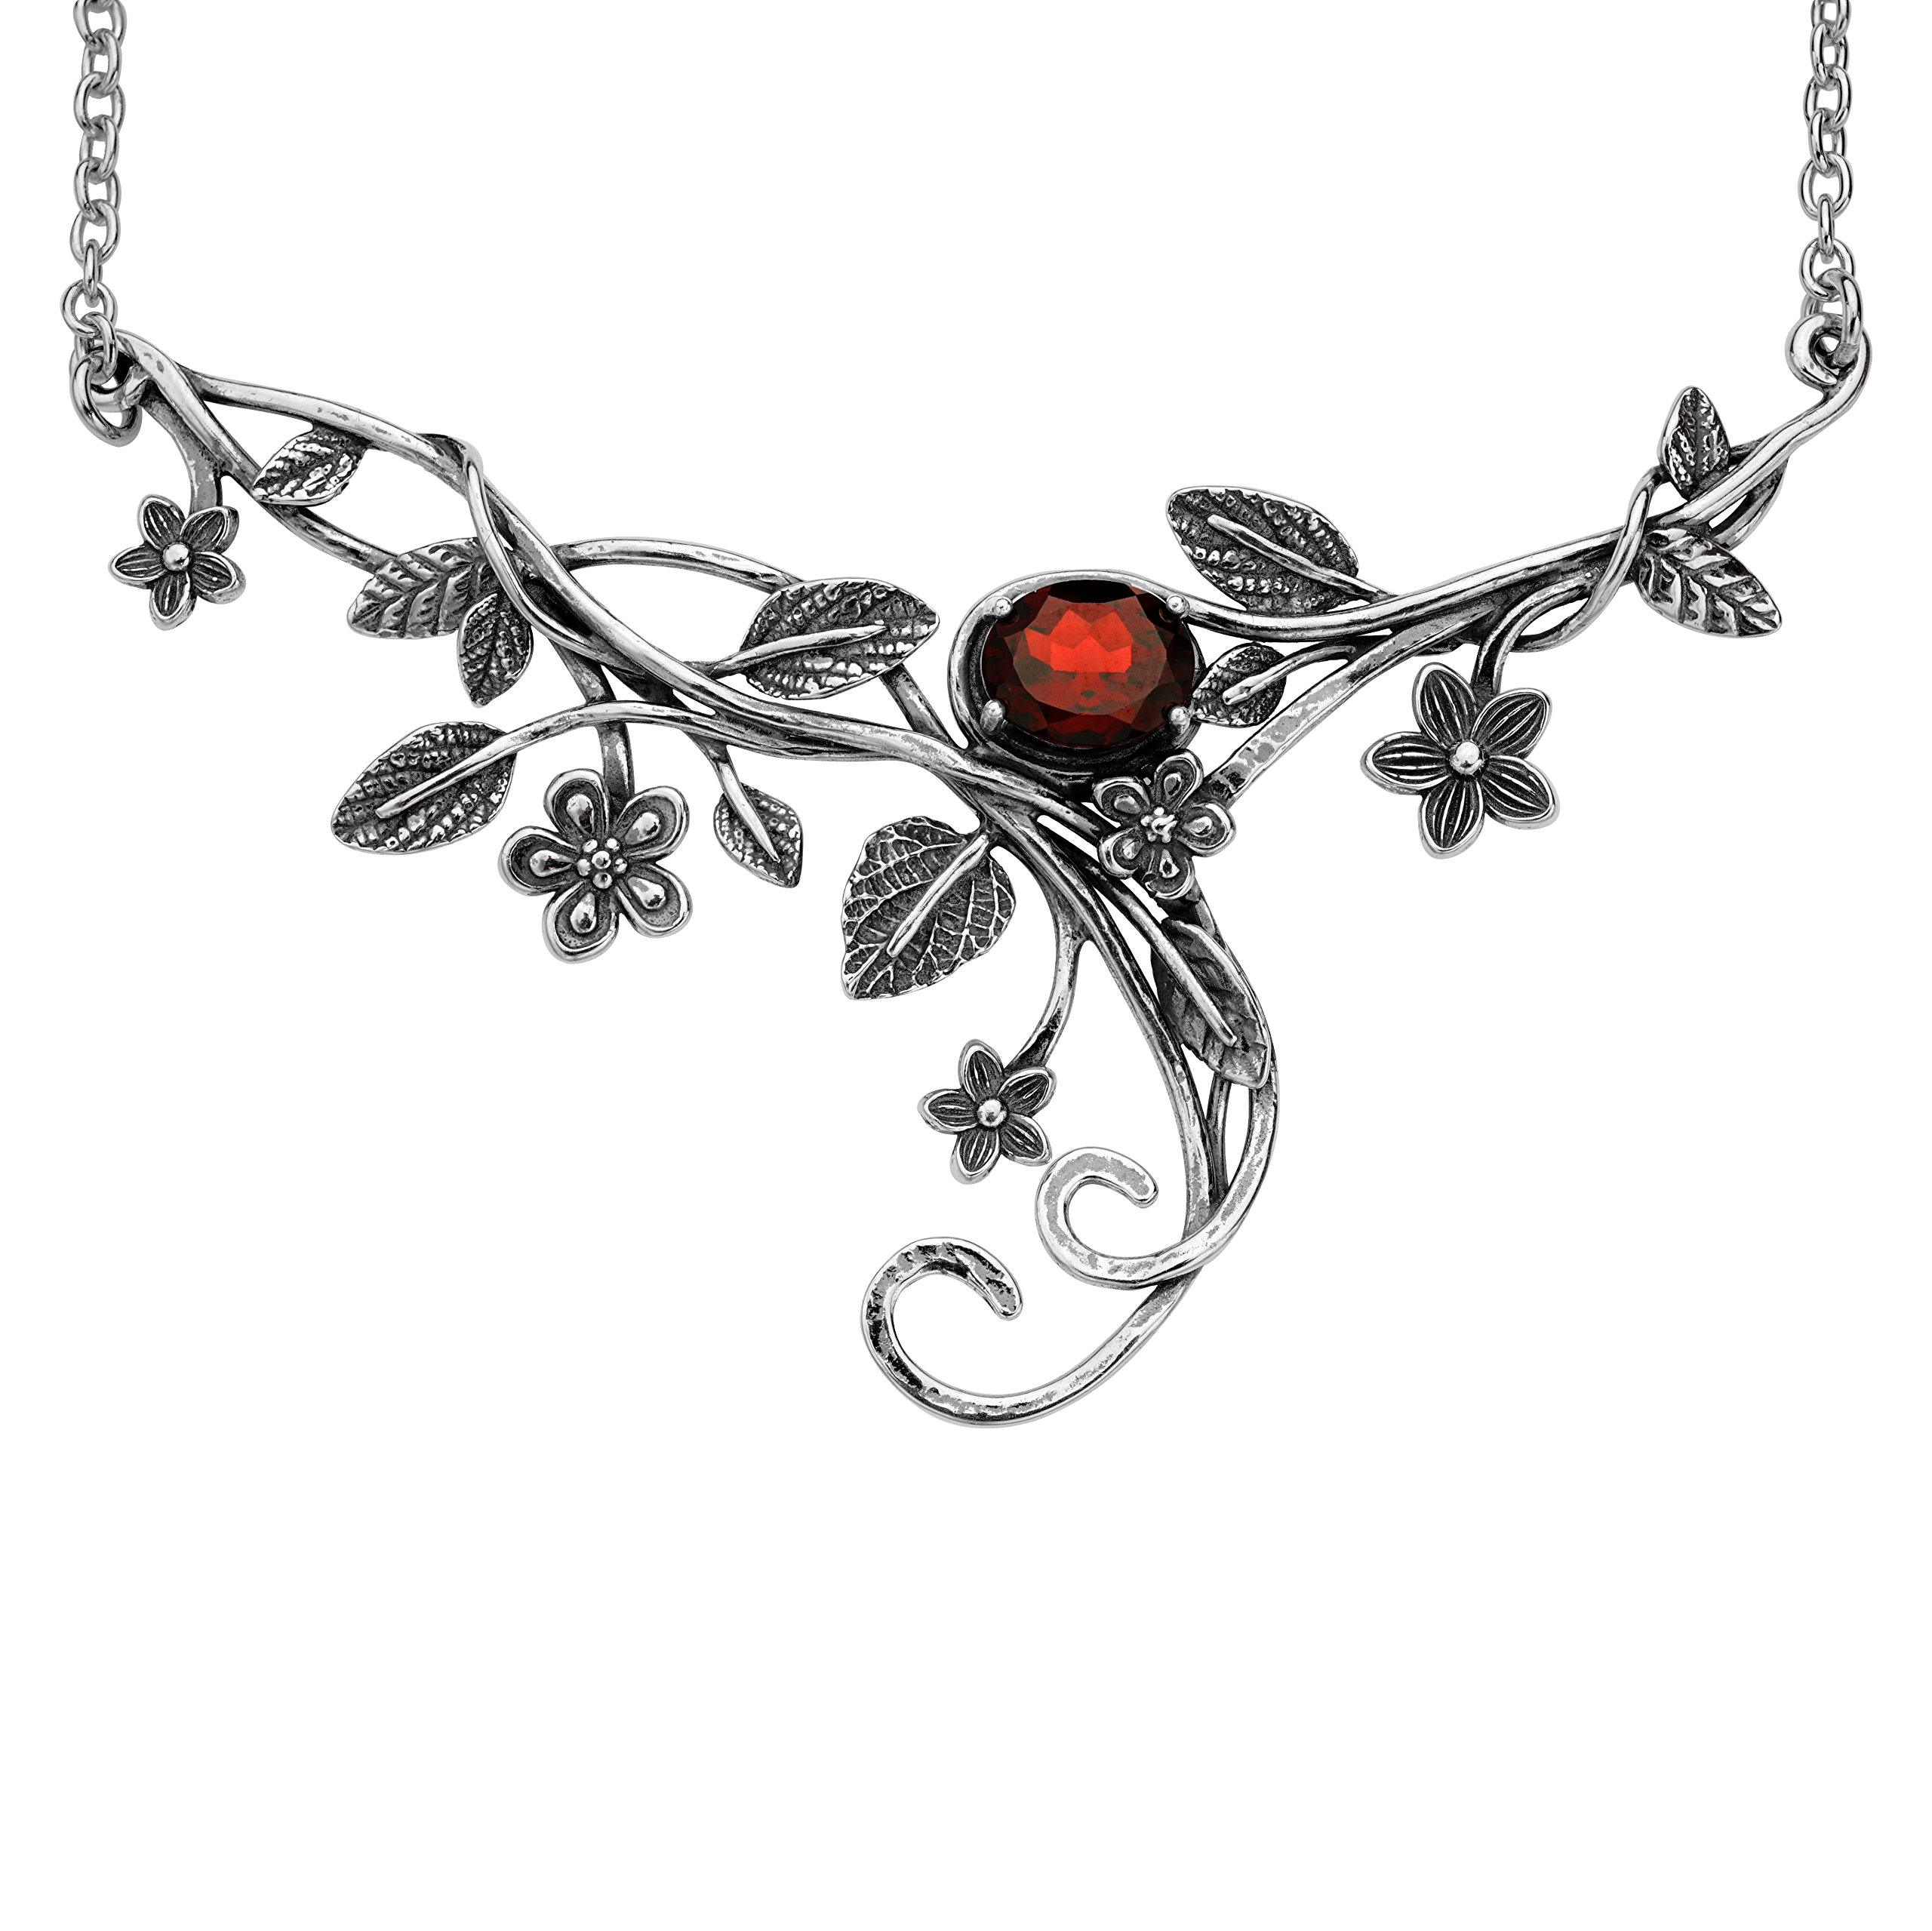 ♥925 Sterling Silver Garnet Floral Swirl Necklace by Paz Creations Fine Jewelry, Made in Israel by PZ (Image #2)